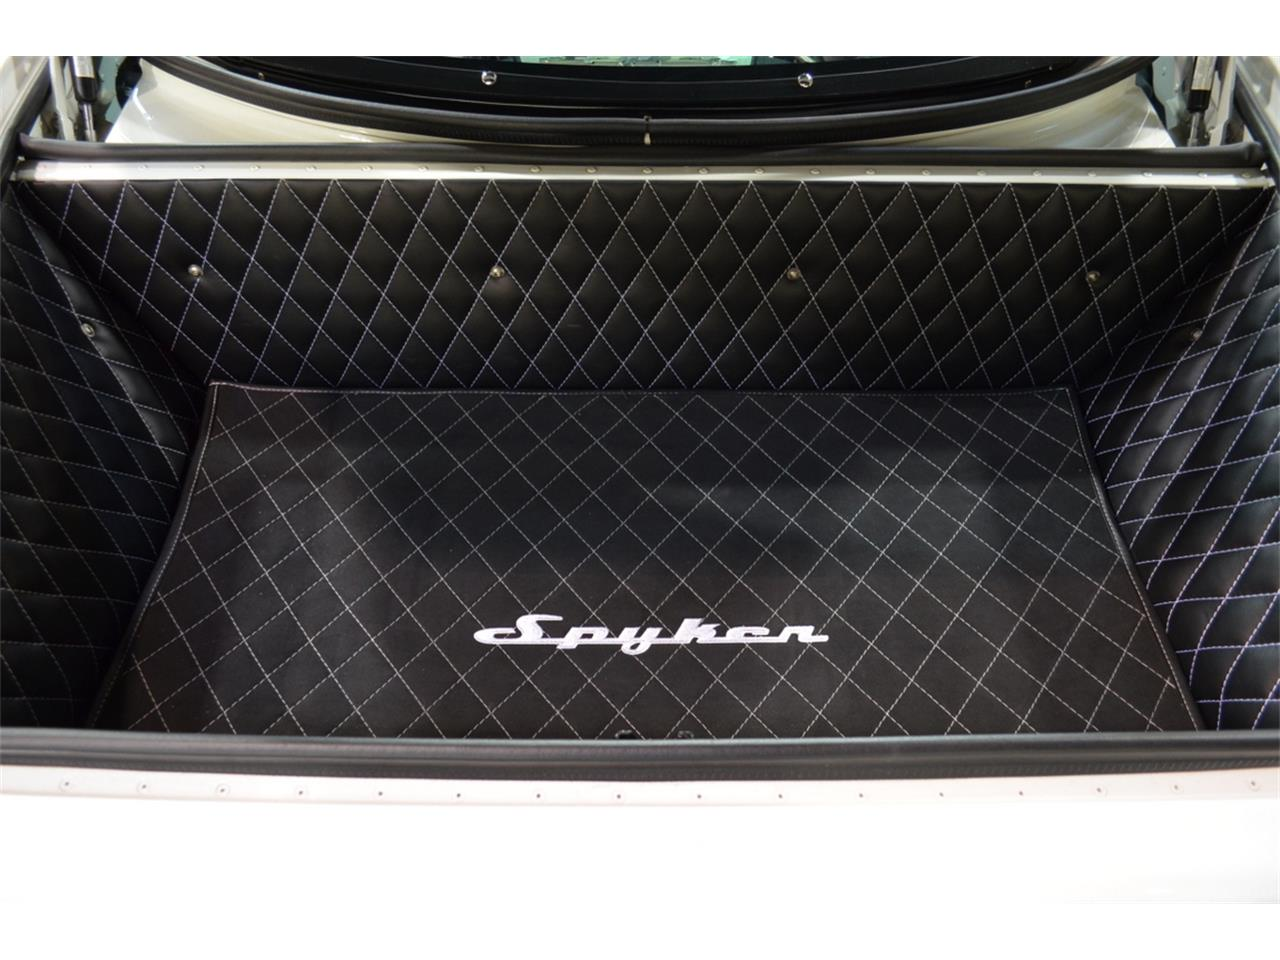 2010 Spyker C8 for sale in Huntington Station, NY – photo 43